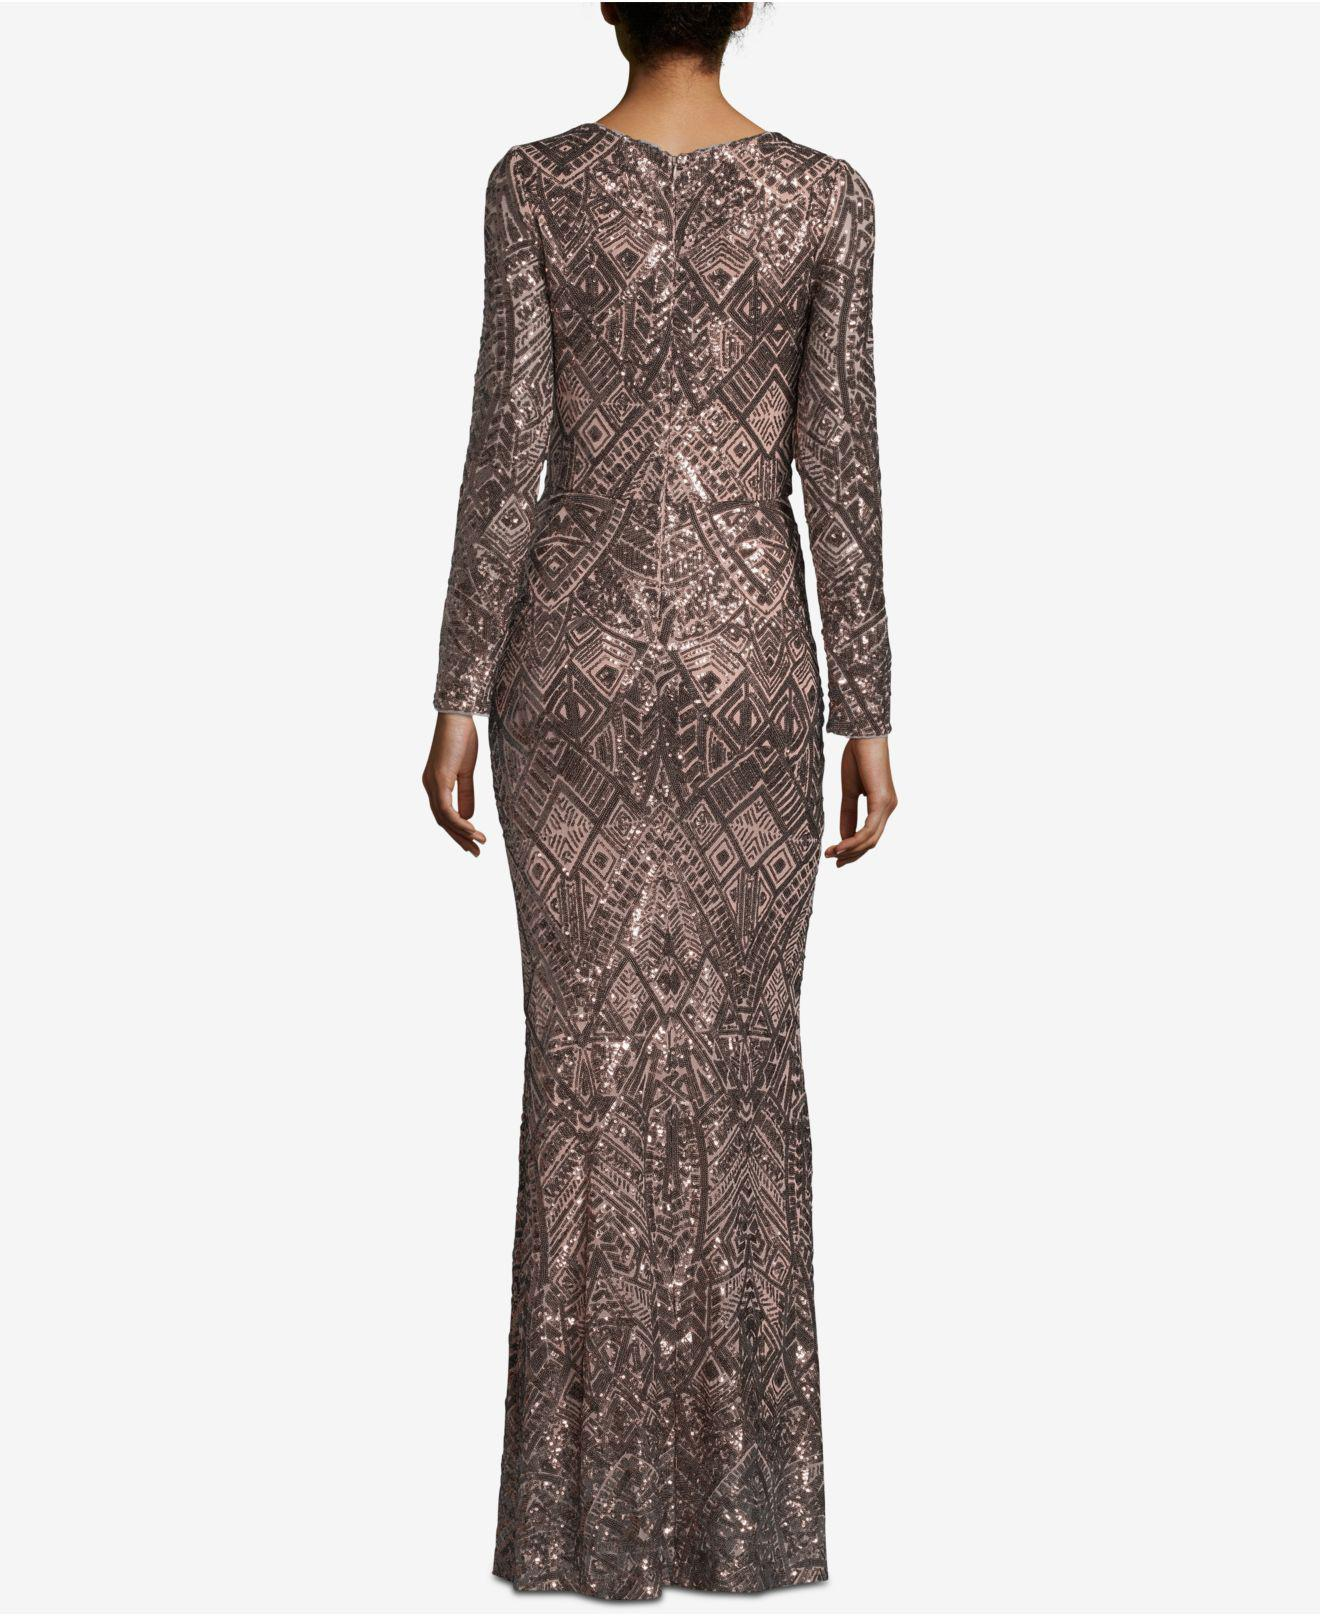 278bfaa0272 Betsy   Adam Petite Long-sleeve Sequin Gown - Lyst